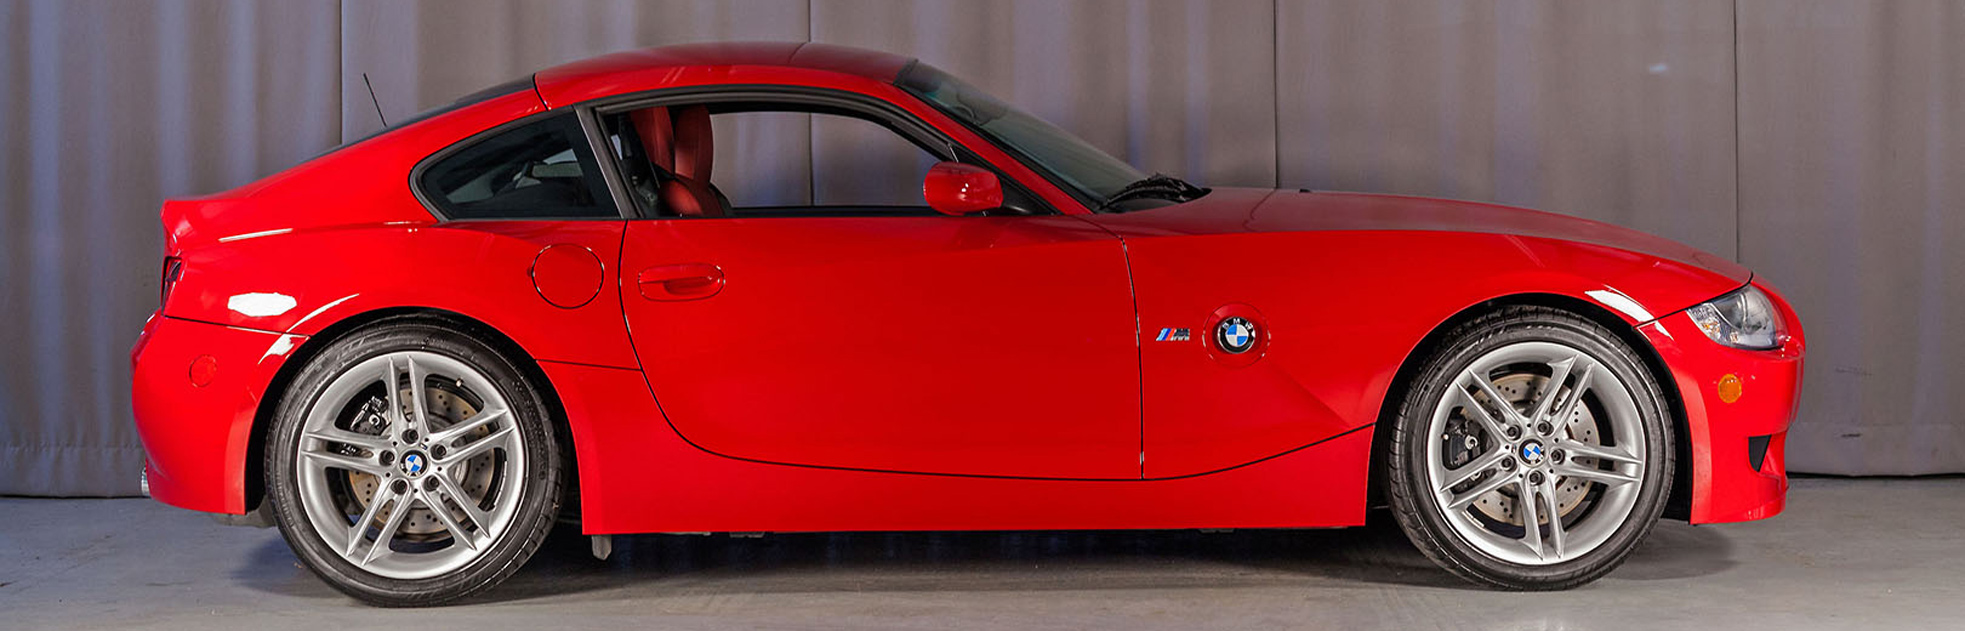 2007E_BMW_Z4_M_Coupe_Red_005